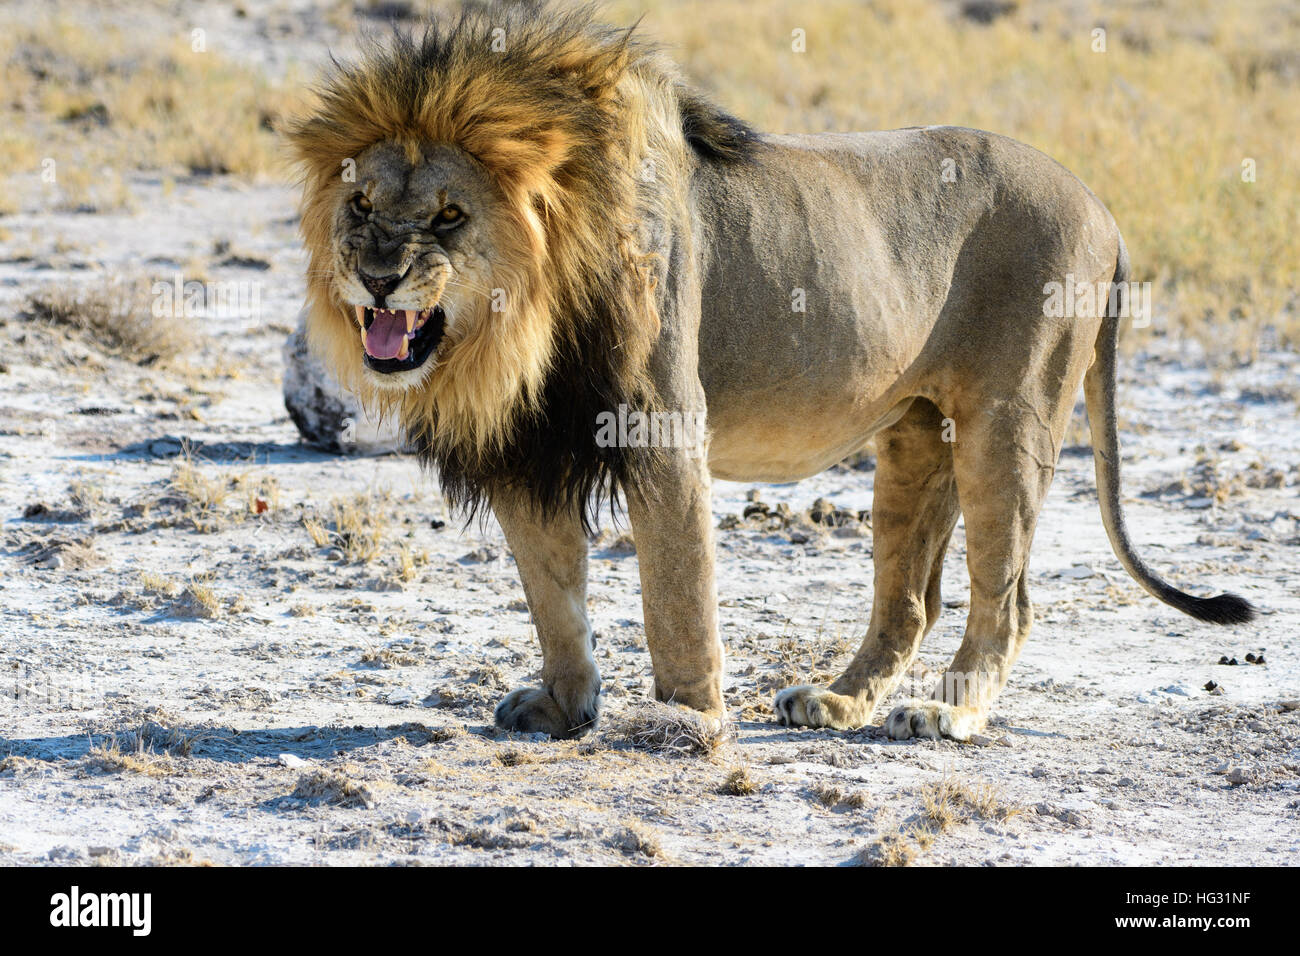 Snarling male Lion trying to intimidate - Stock Image